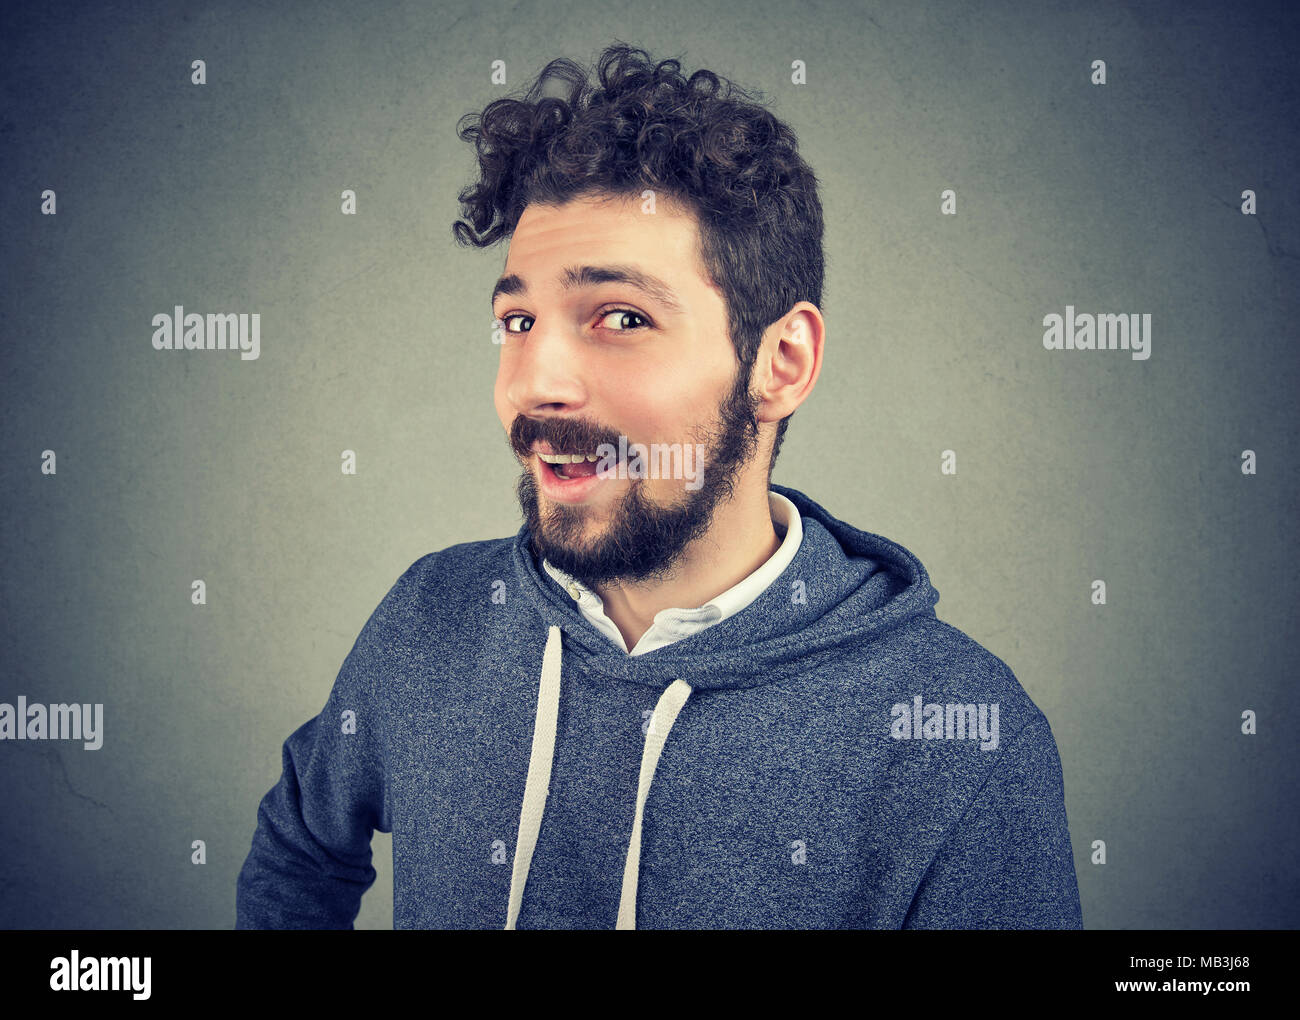 Cunning tricky young man looking with smile at camera - Stock Image